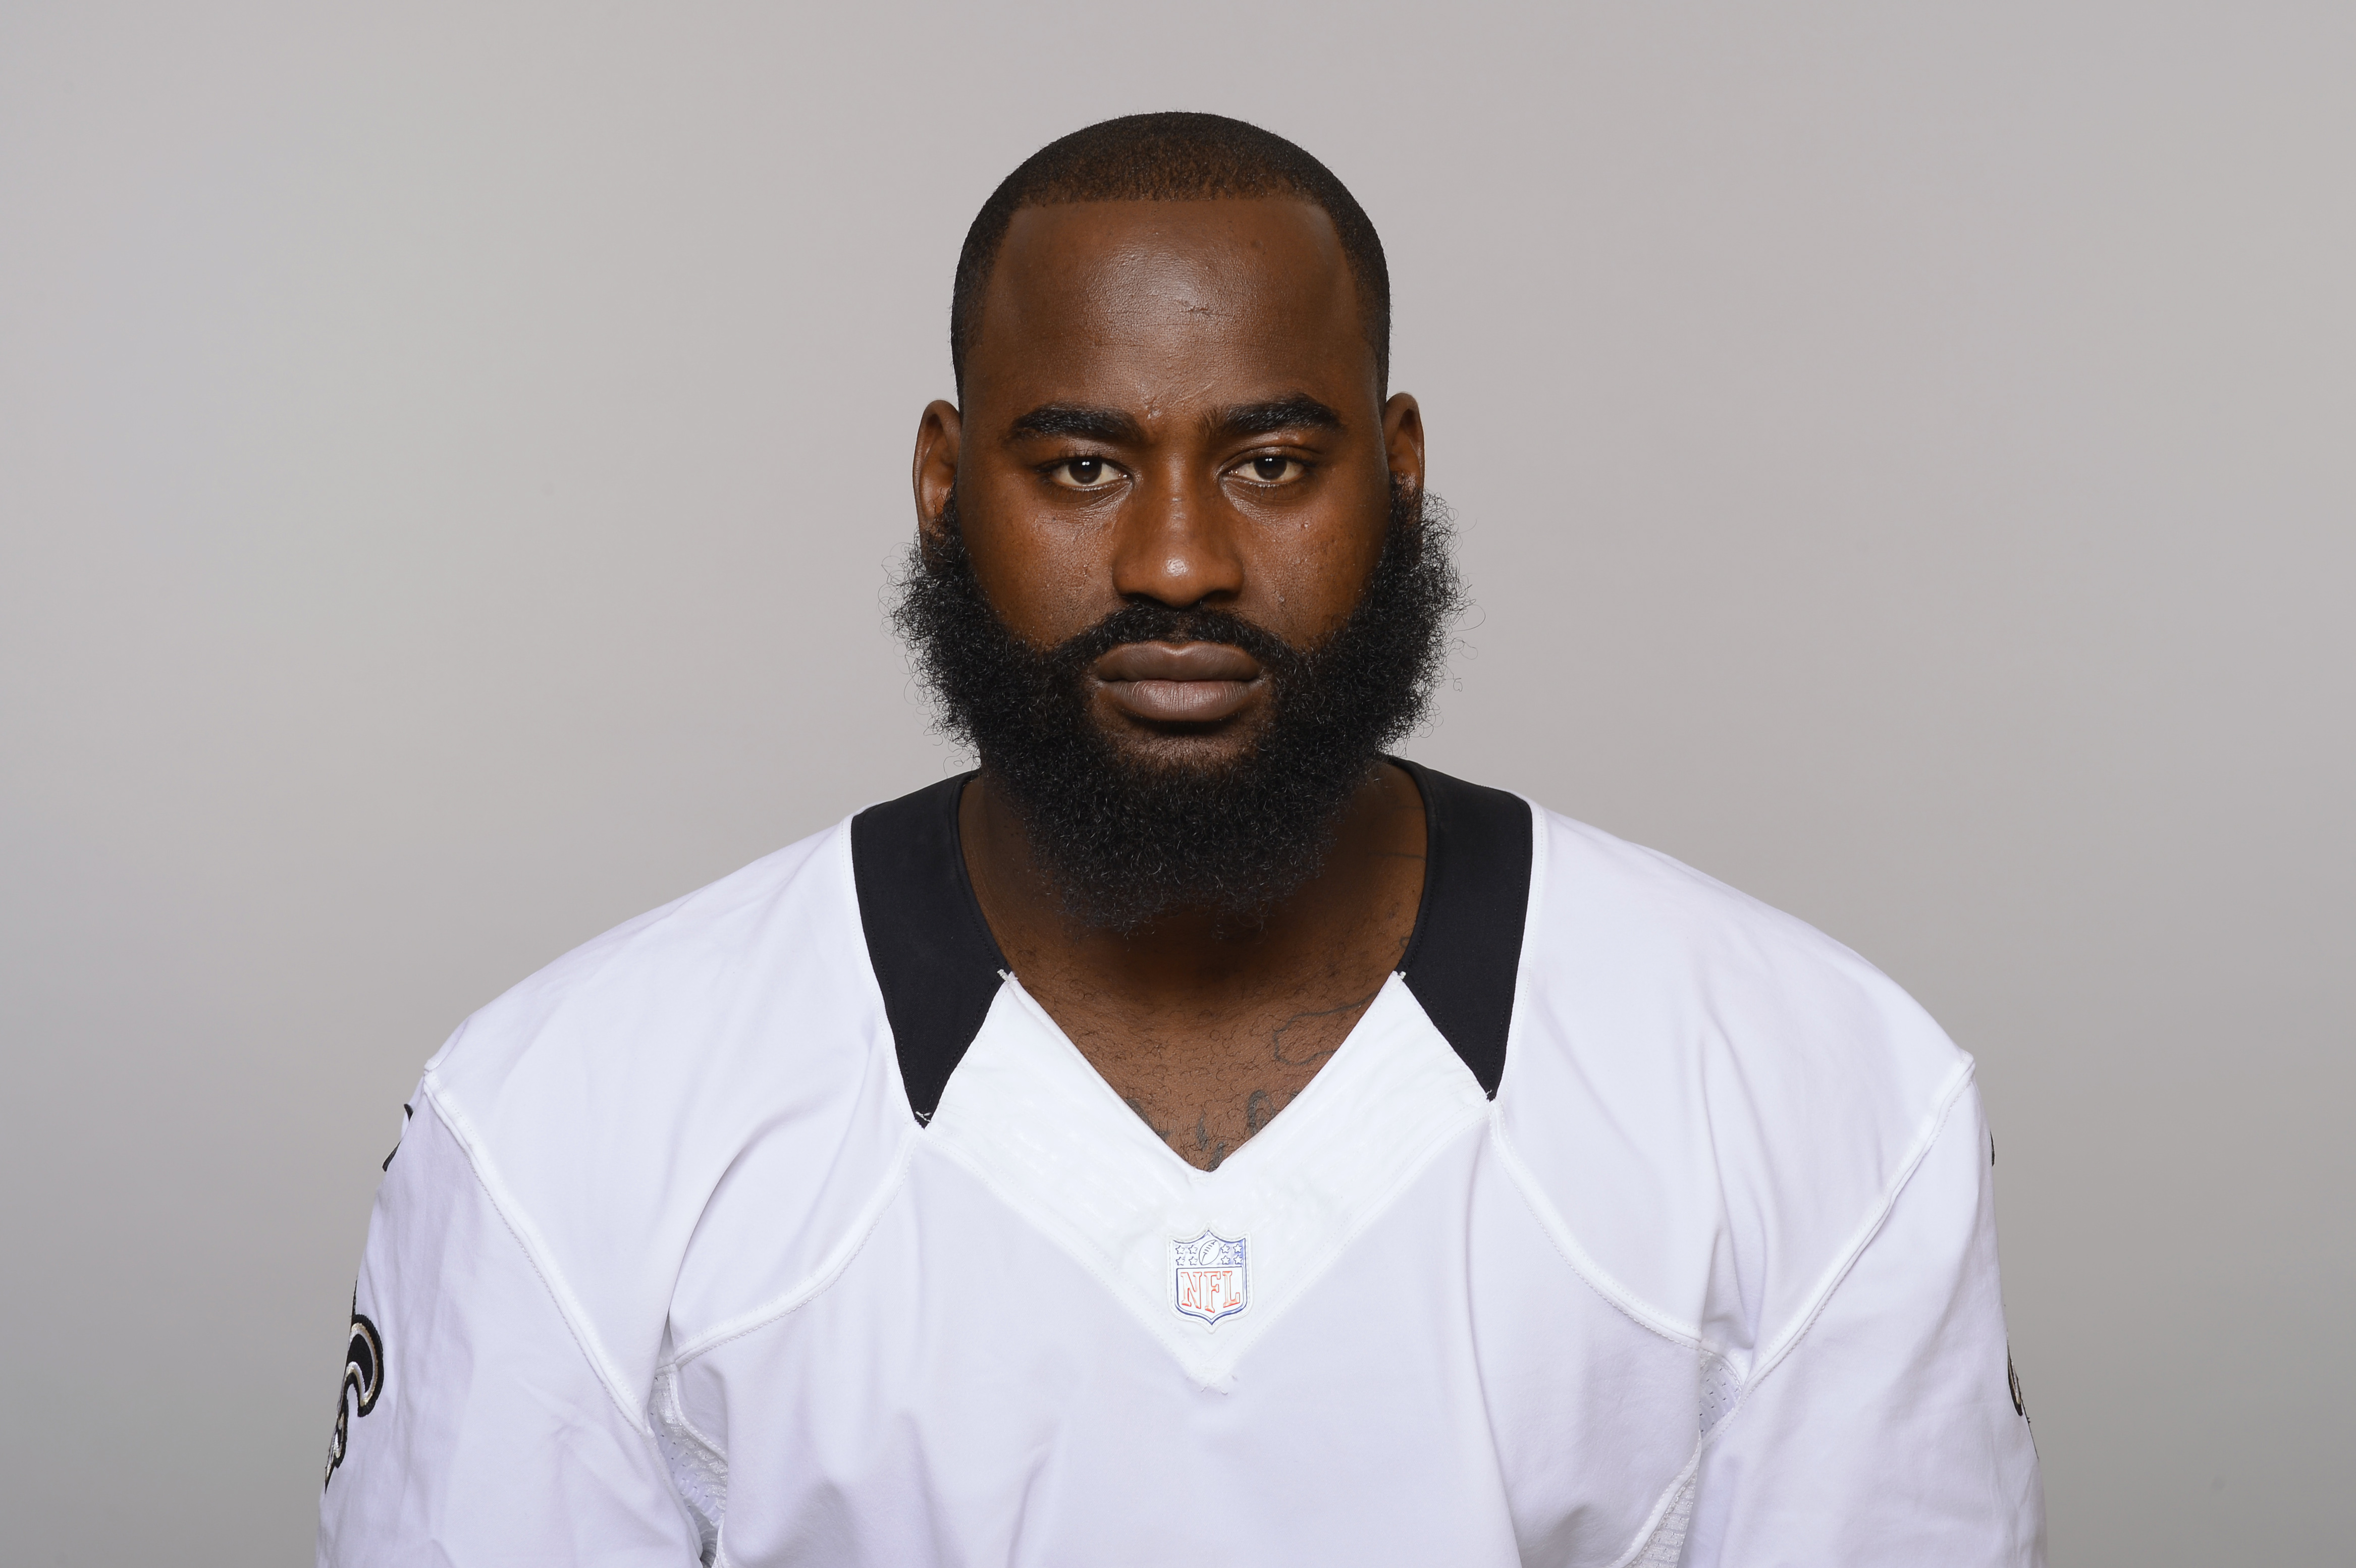 FILE - This 2015 file photo shows Junior Galette of the New Orleans Saints NFL football team. Redskins coach Jay Gruden says outside linebacker Junior Galette will miss the entire season after tearing his left Achilles tendon. Gruden discussed Galette's s